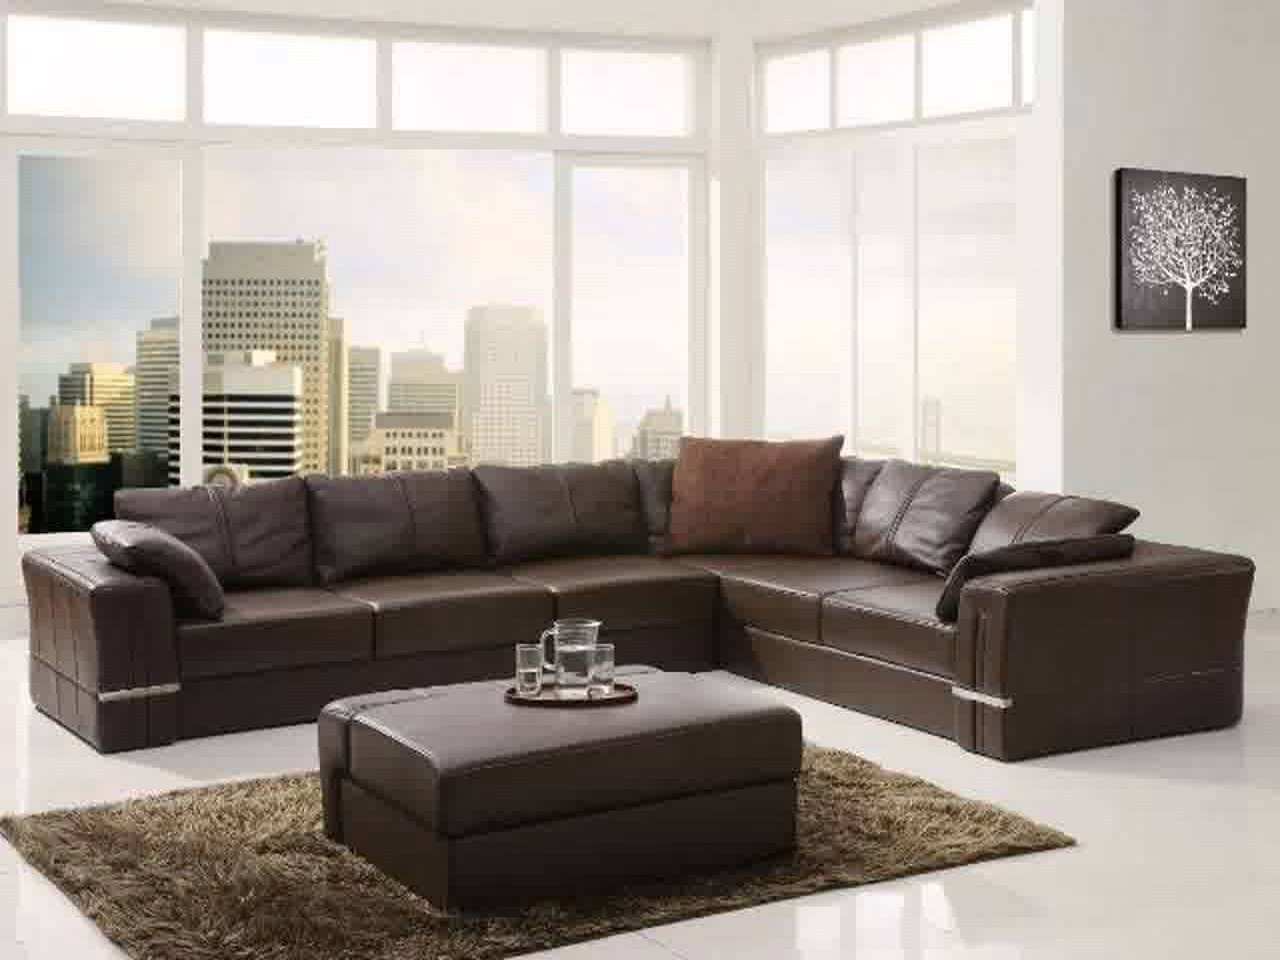 Furniture : Sectional Sofa Under 200 Corner Couch Tao Beach Recliner for Vt Sectional Sofas (Image 7 of 10)